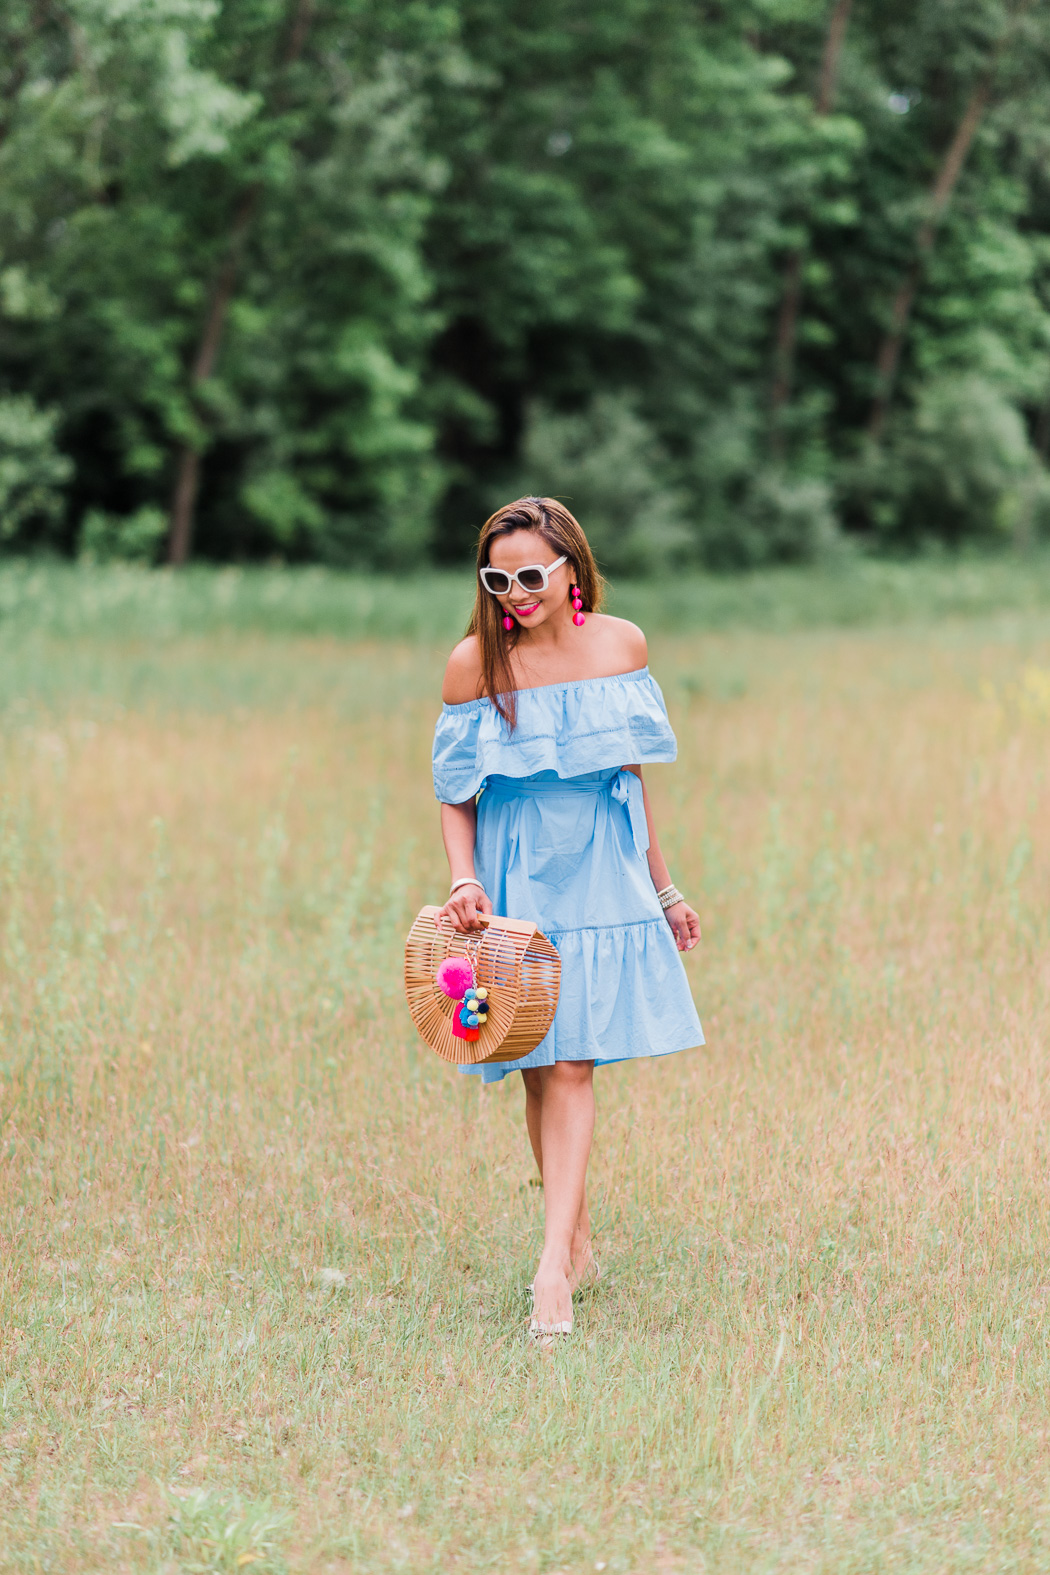 colors of mei, fashion blogger, milwaukee blogger, inspiration blogger, blue dress ideas, kate spade glasses, flat shoe ideas, ruffle dress, cute dress ideas, dress ideas, mke fashion, mke, mke blogger, milwaukee fashion blogger, mei, meileilan, brian mattinson photography, brian mattinson